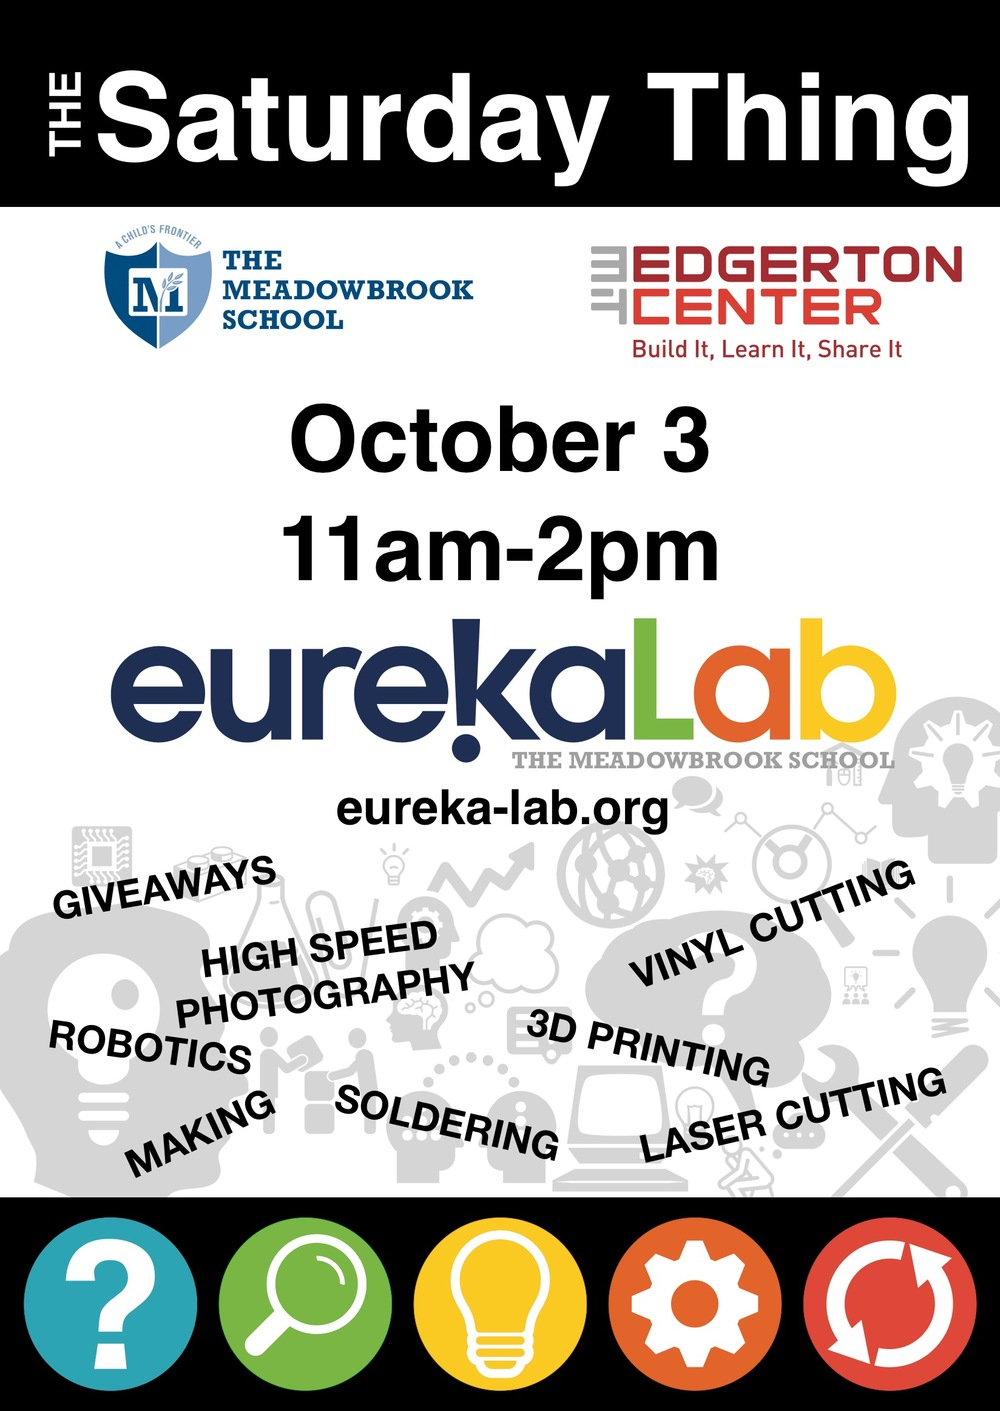 Join us in the EurekaLab for some making this Friday, October 3 from 11-2pm.